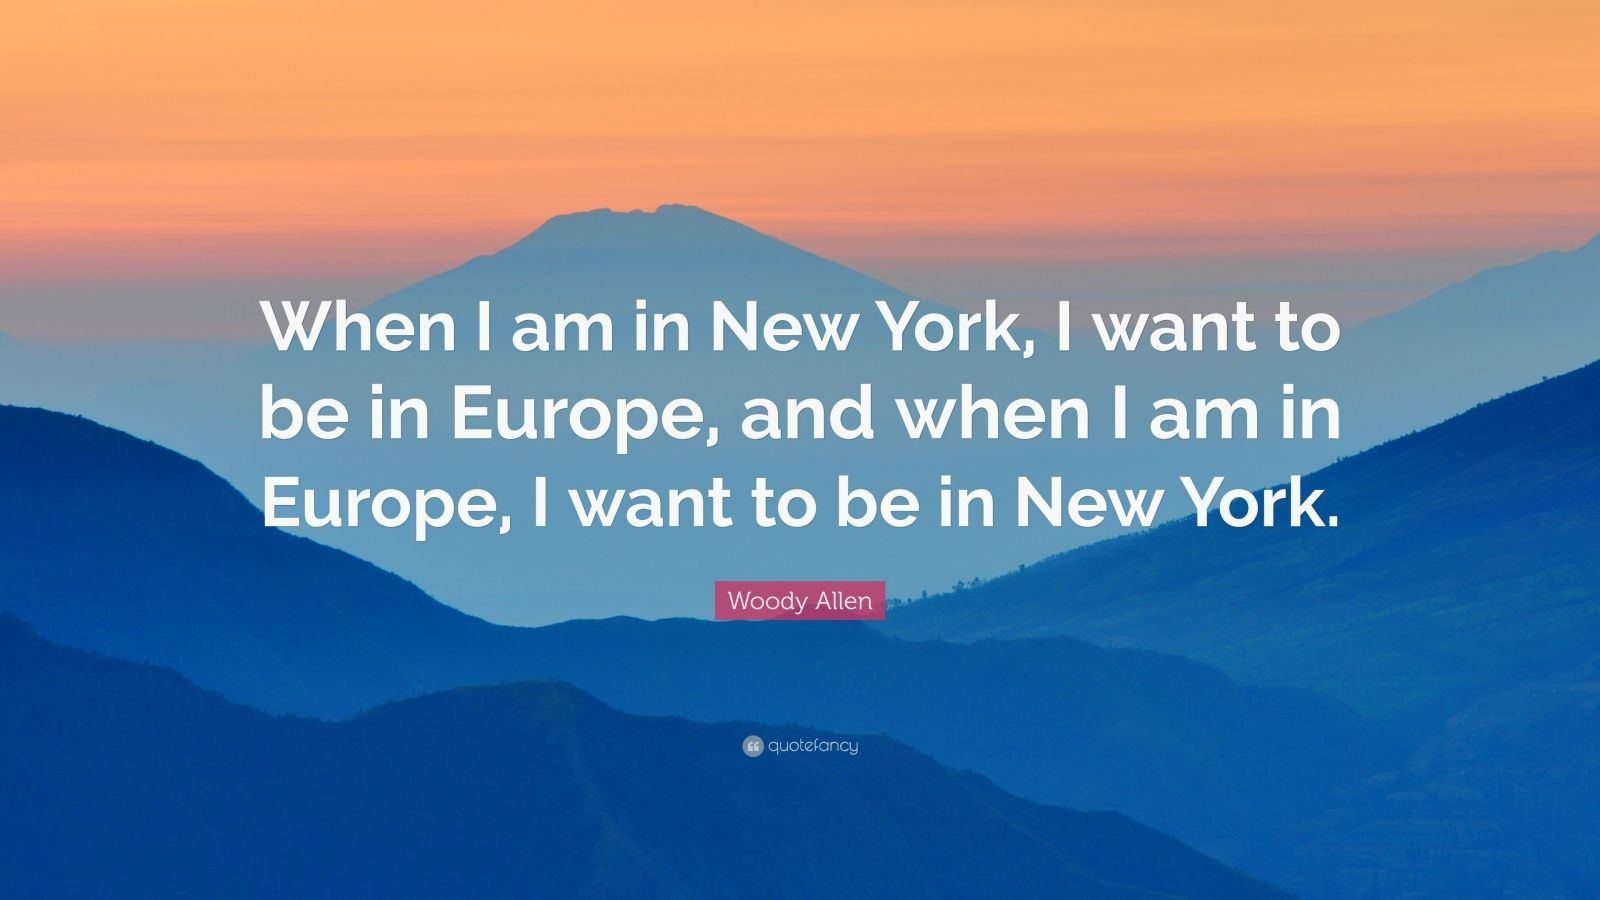 """Woody Allen Quote: """"When I am in New York, I want to be in Europe, and when I am in Europe, I want to be in New York."""""""